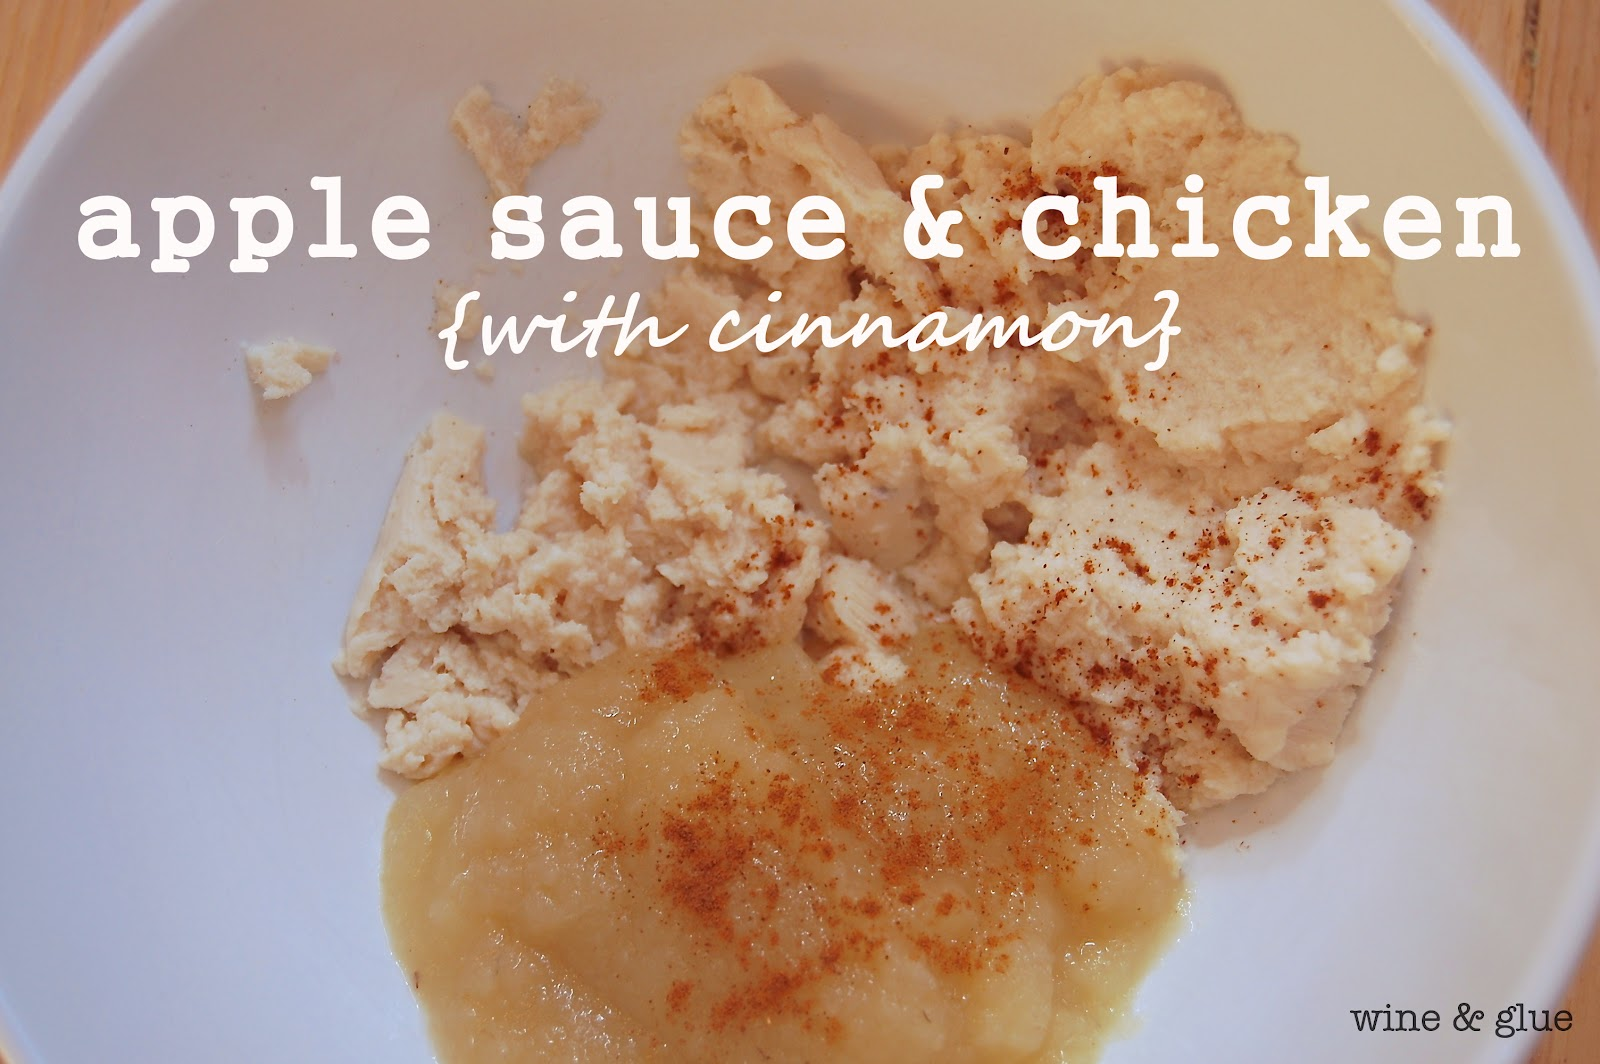 Homemade baby food part 4 my baby likes it spicy wine glue two ounces or two cubes of frozen chicken defrosted and then a nice scoop of sugar free natural applesauce and topped with a small dash of cinnamon forumfinder Images